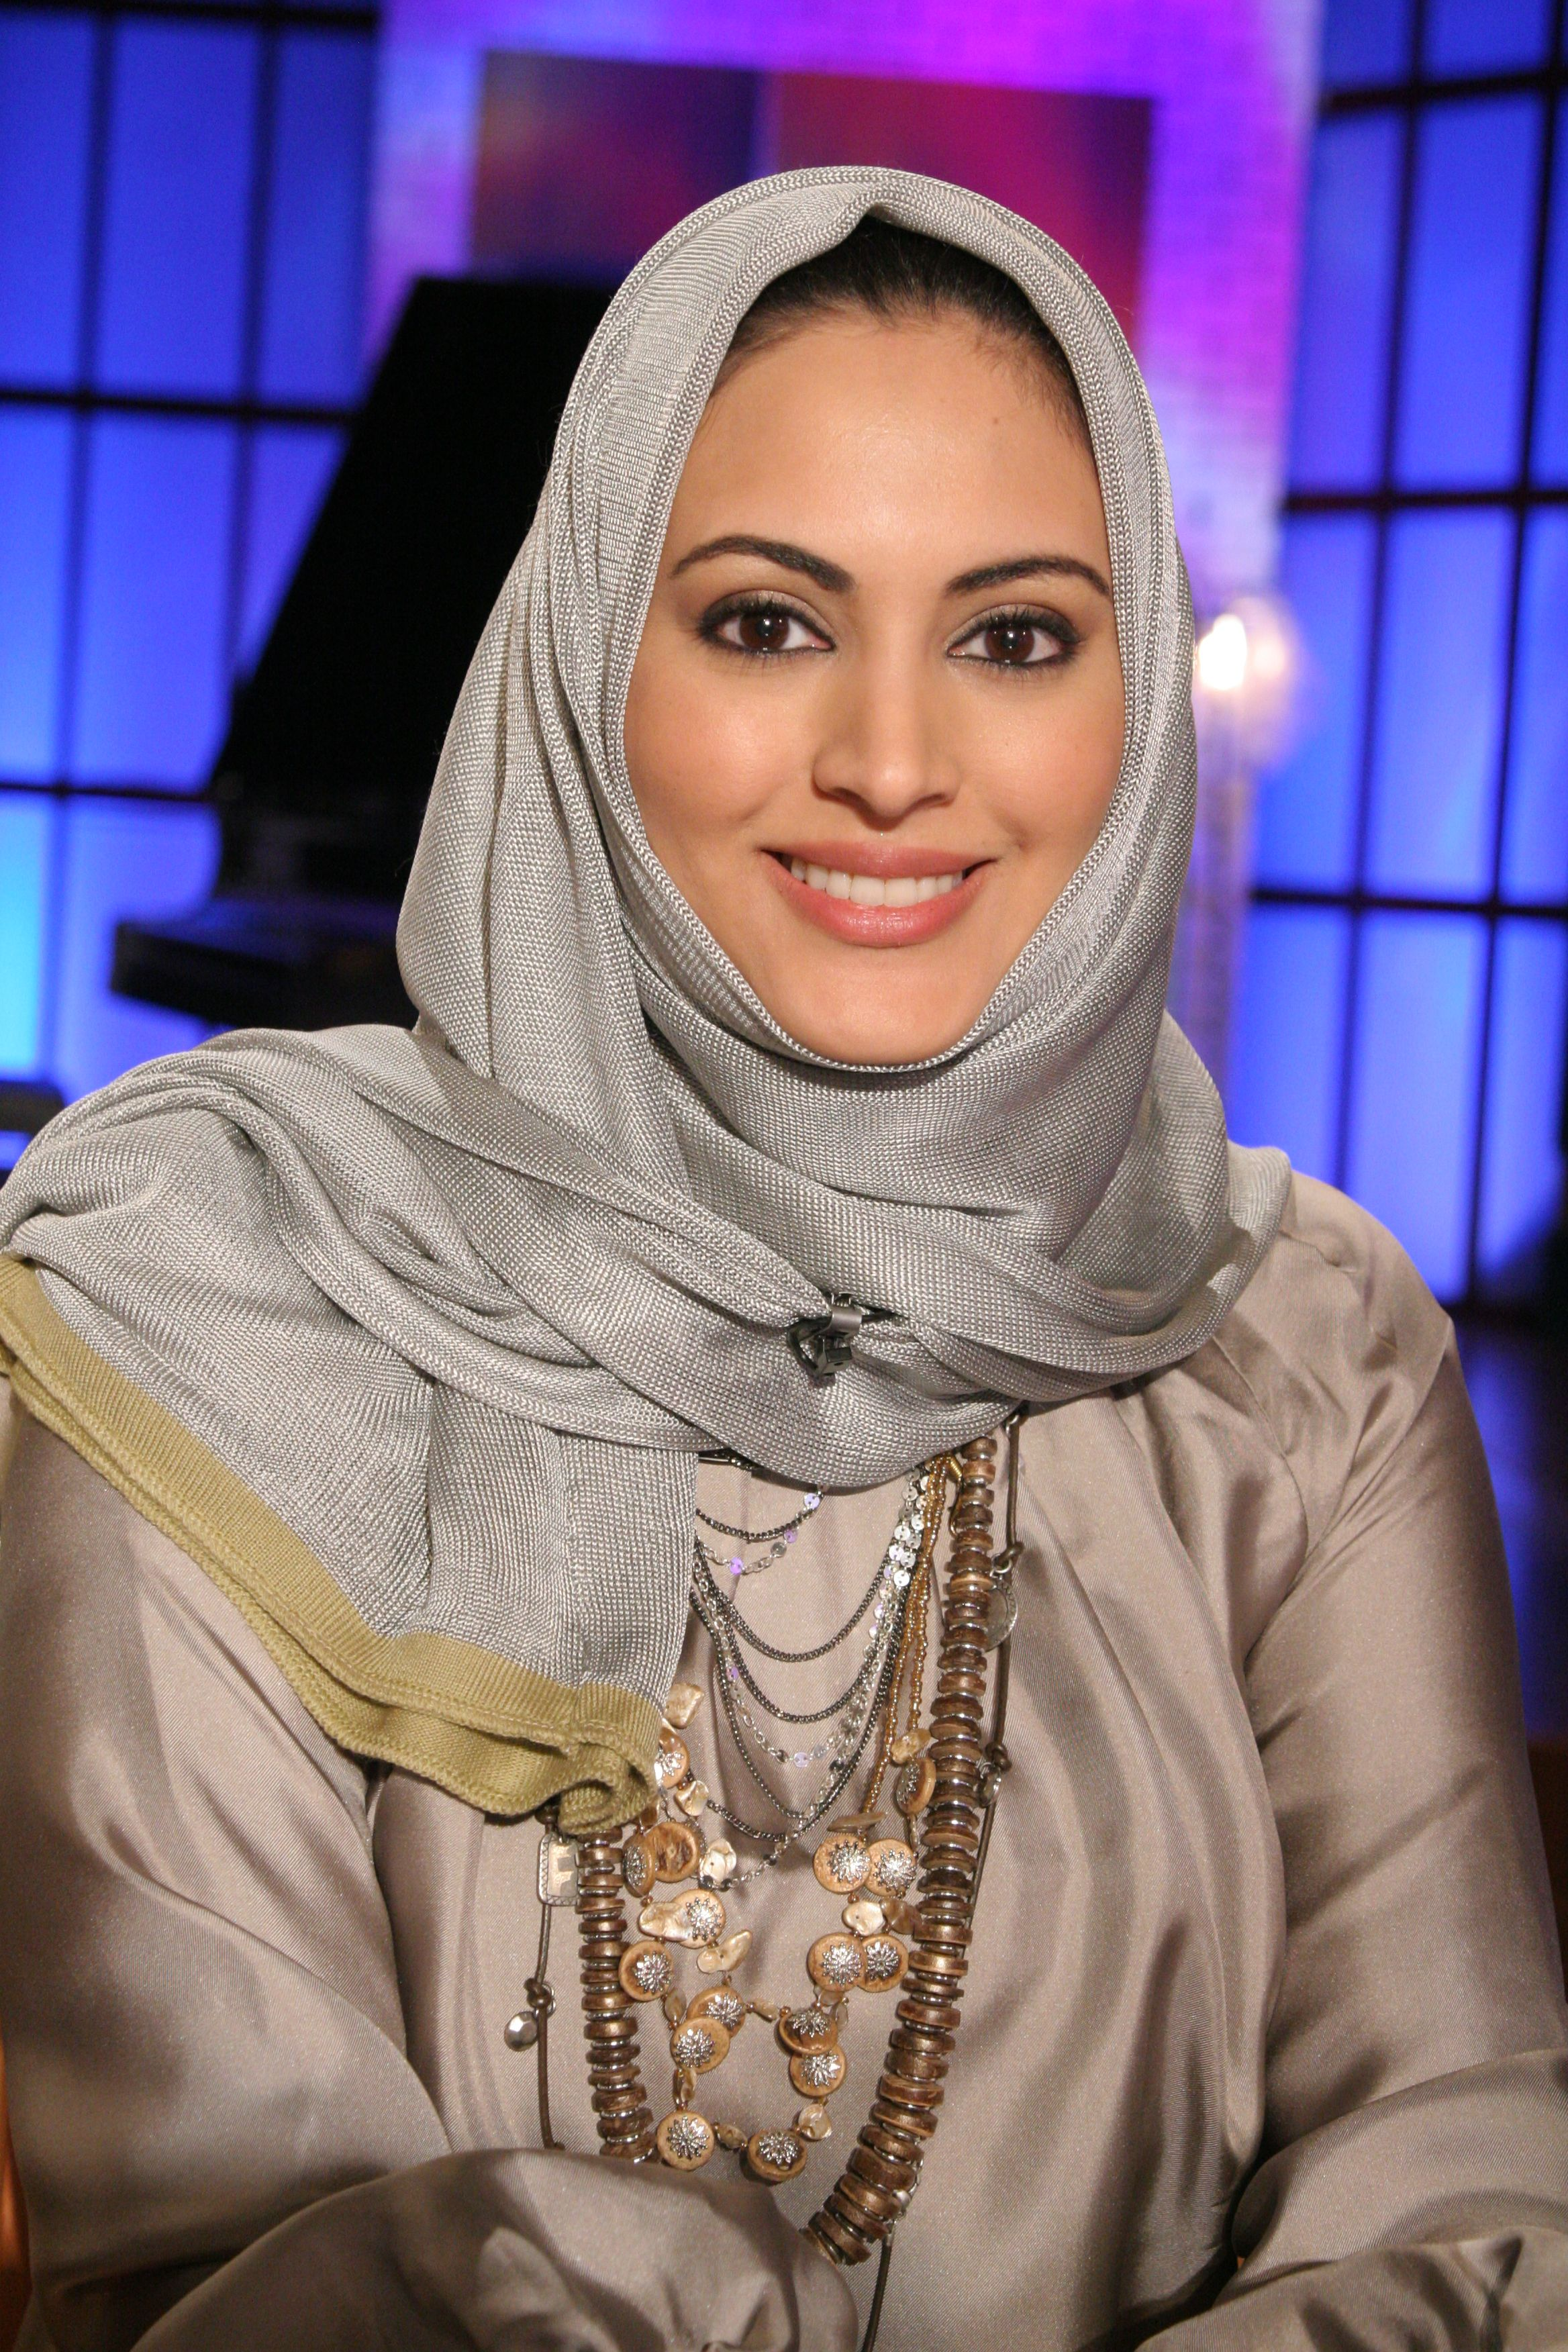 Beautiful women smiling in her hijab from cairo egypt beauty